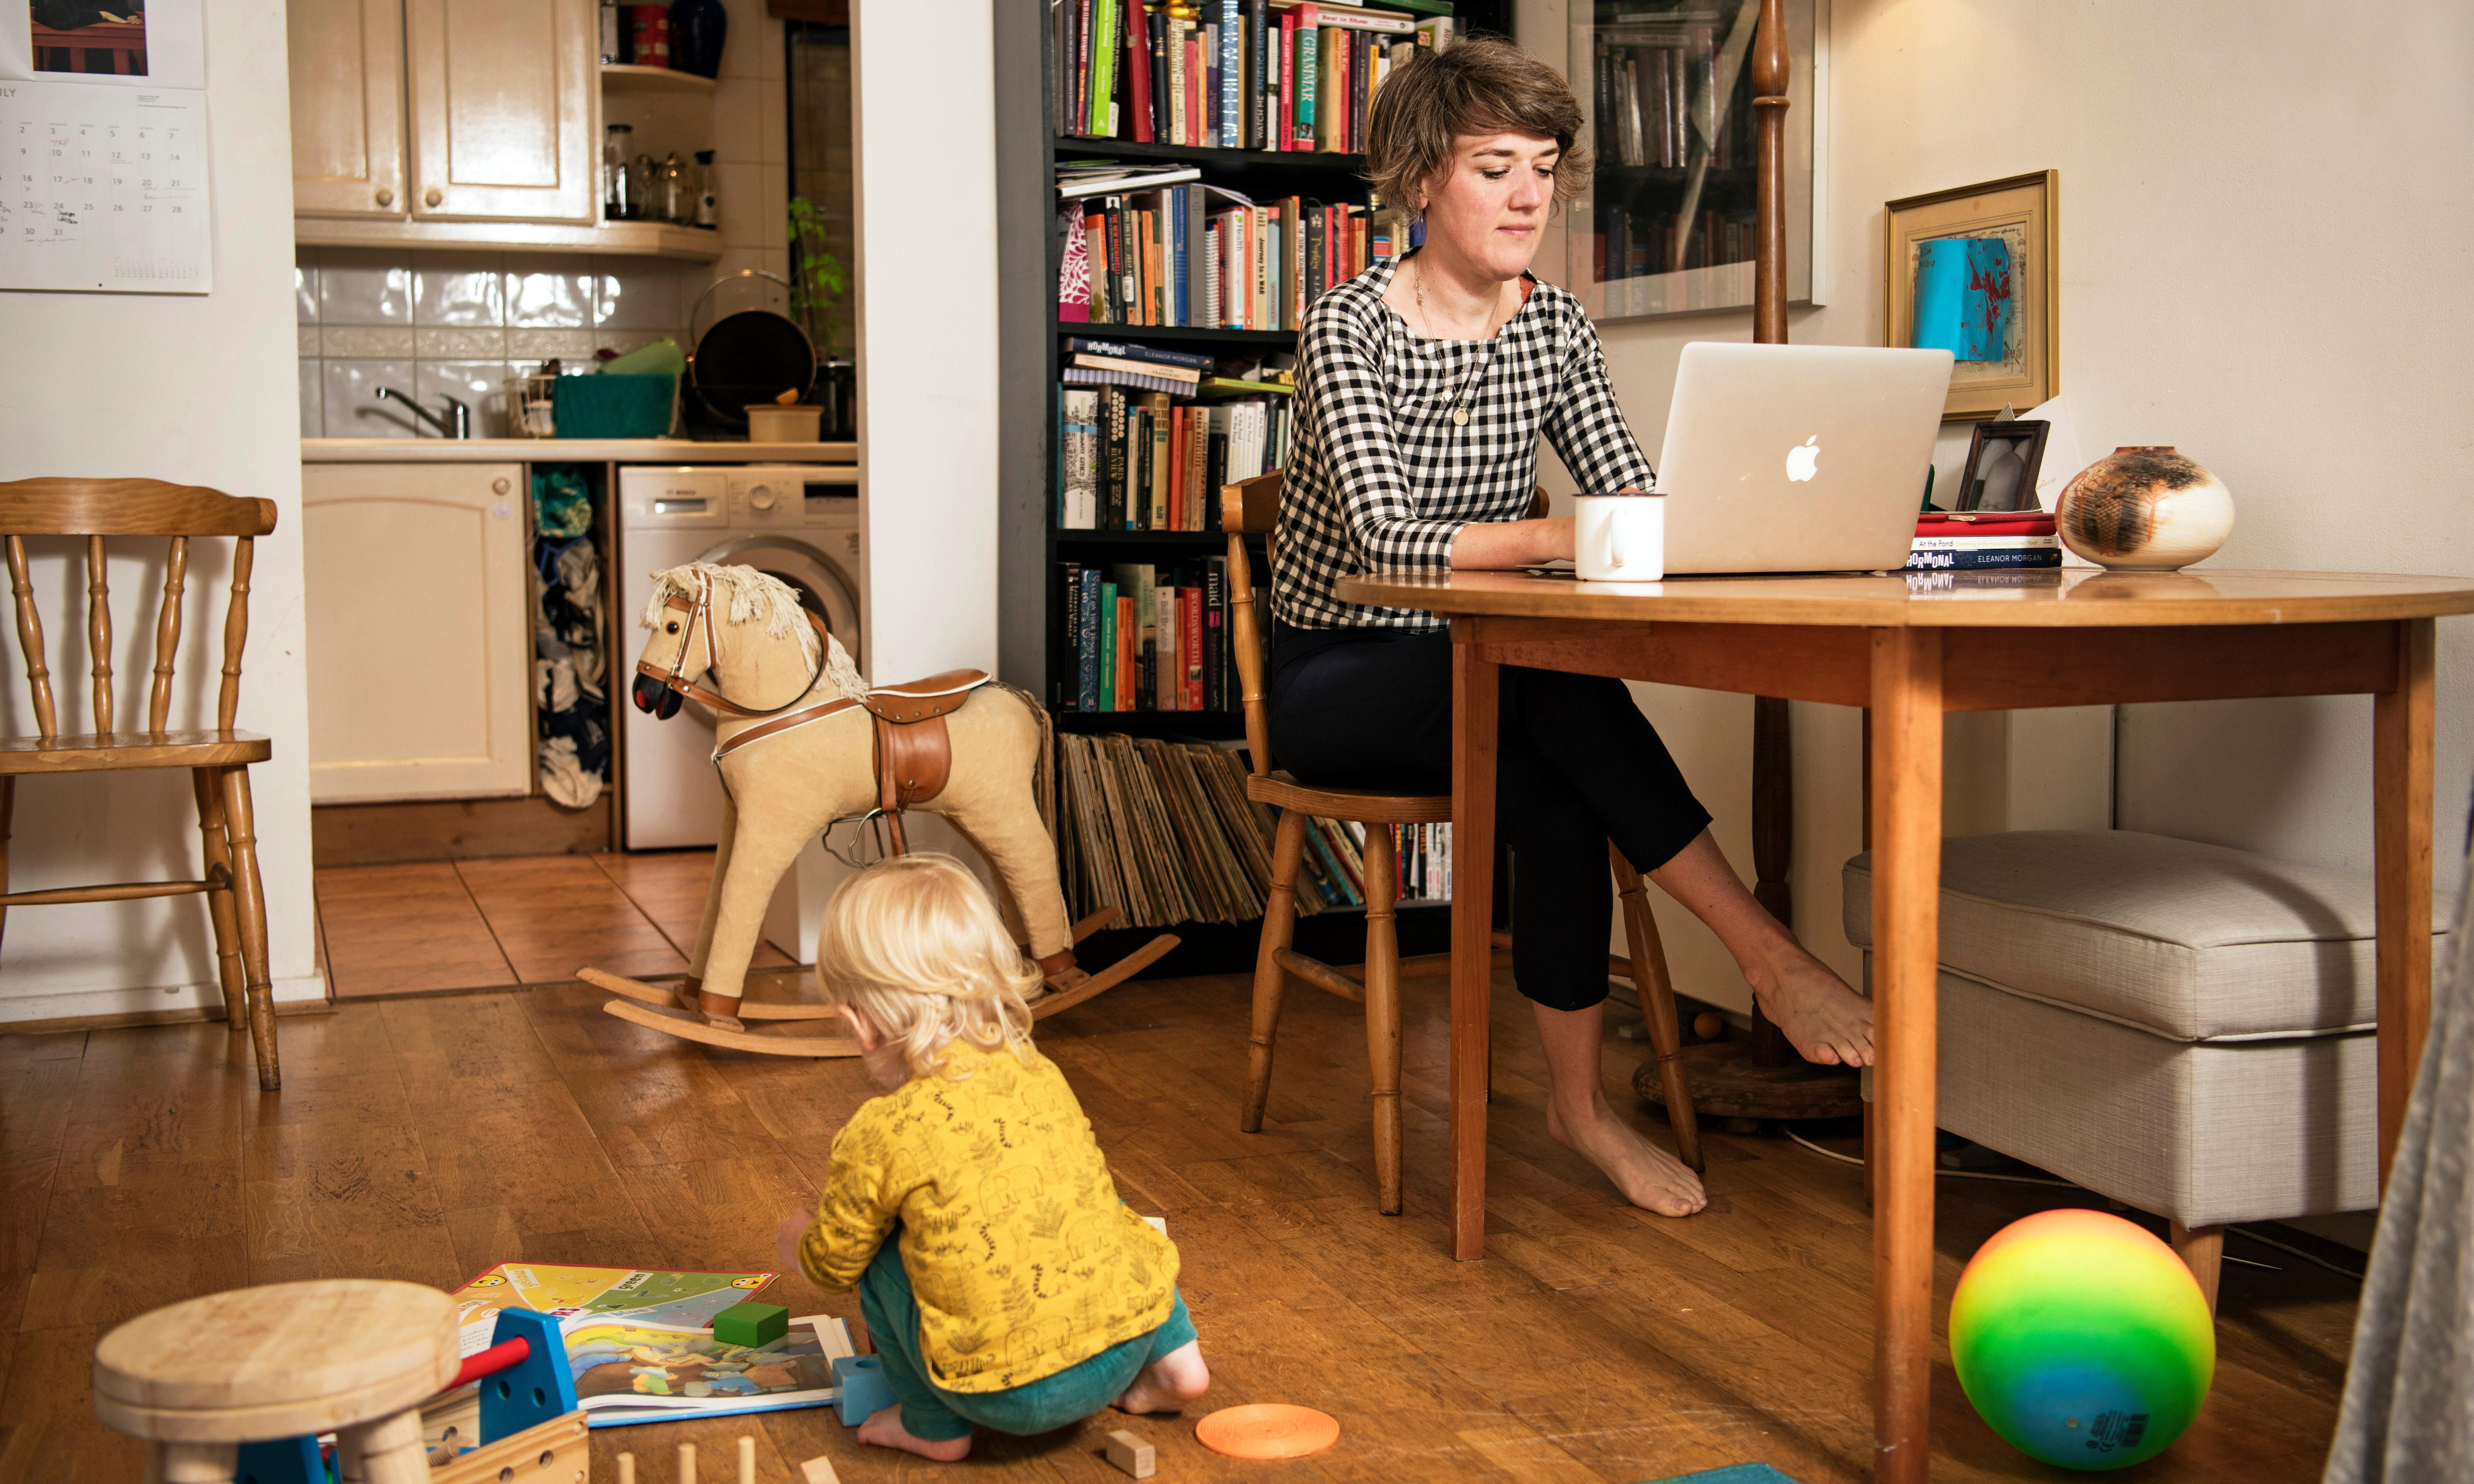 I learned I could do my job and not feel ashamed of having a baby